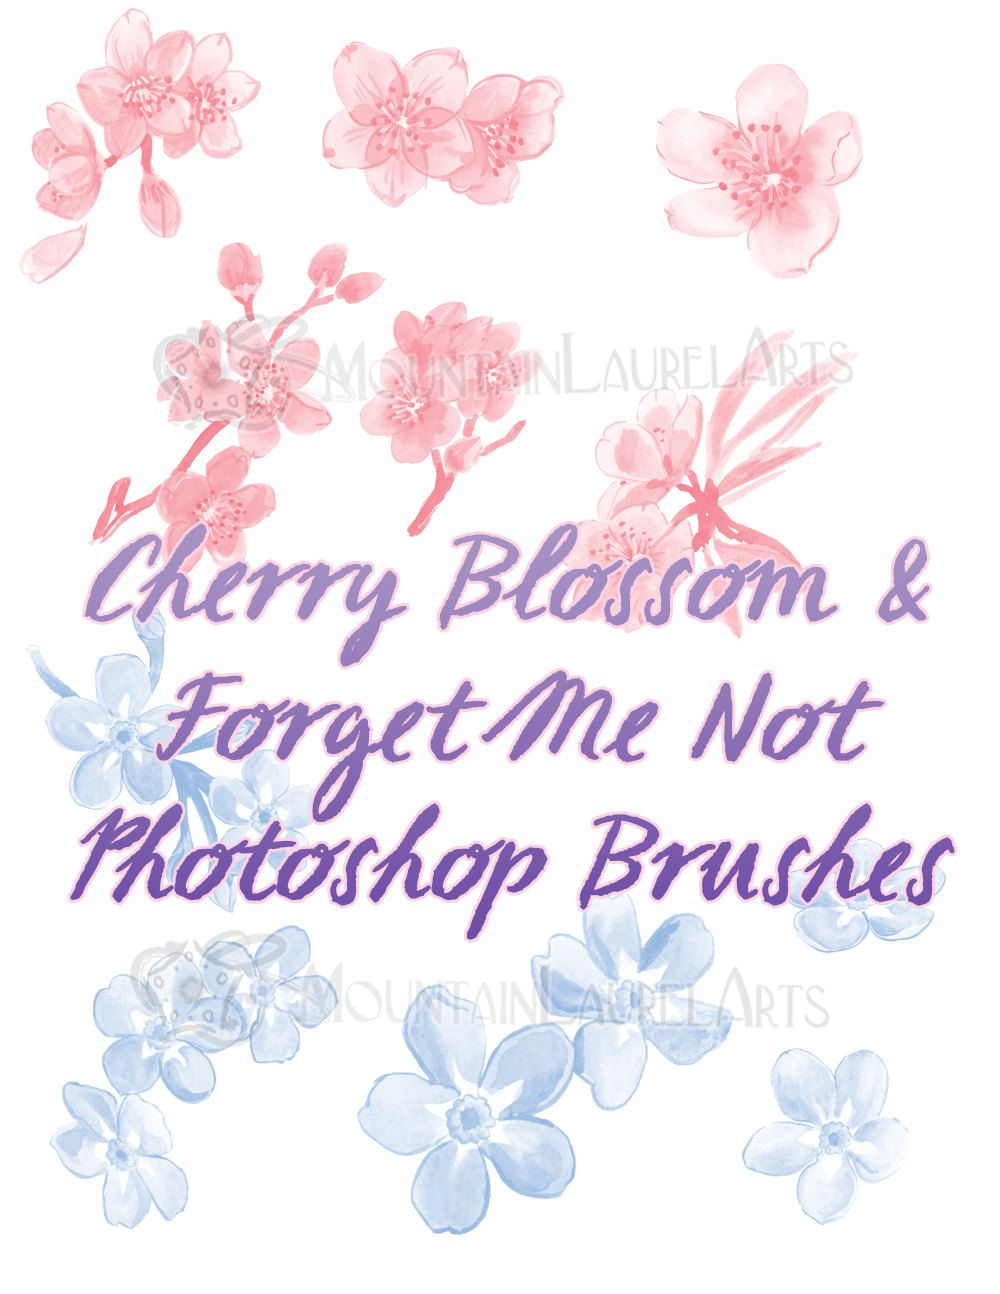 Cherry Blossom Photoshop Brushes Forget Me Not Graphic Design